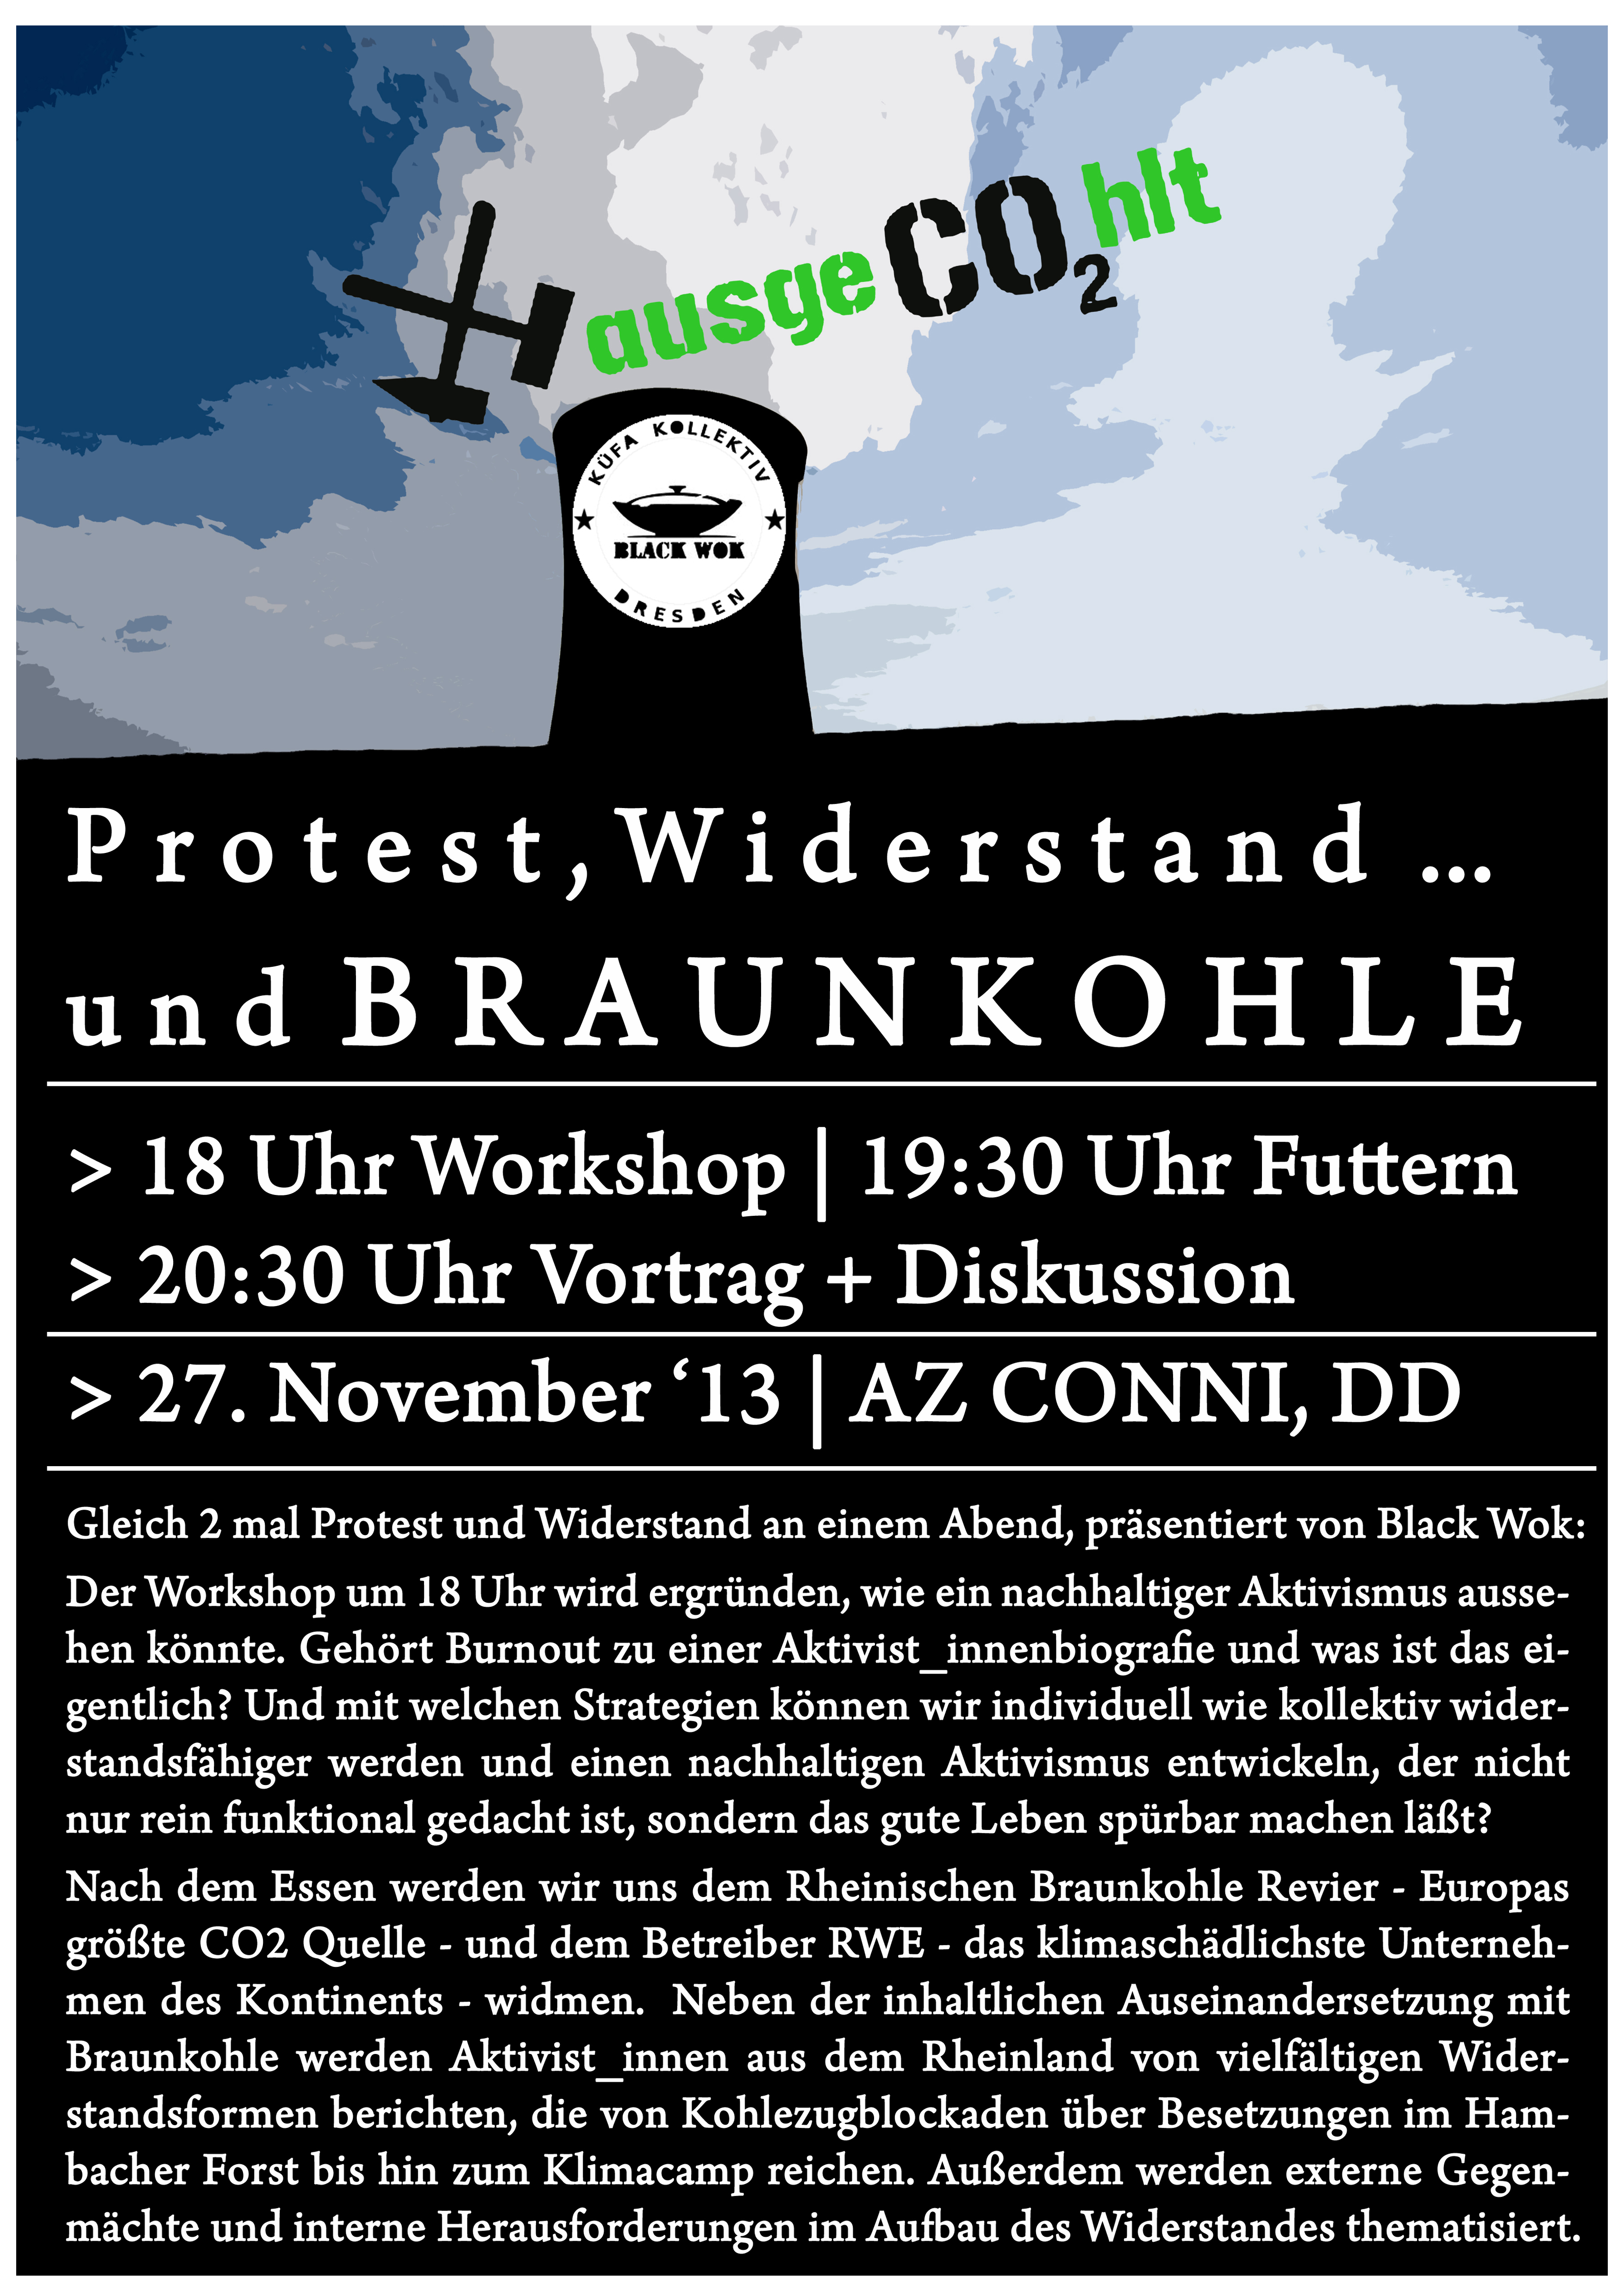 flyerDDhttp://hambacherforst.blogsport.de/images/FlyerRand_01.jpg